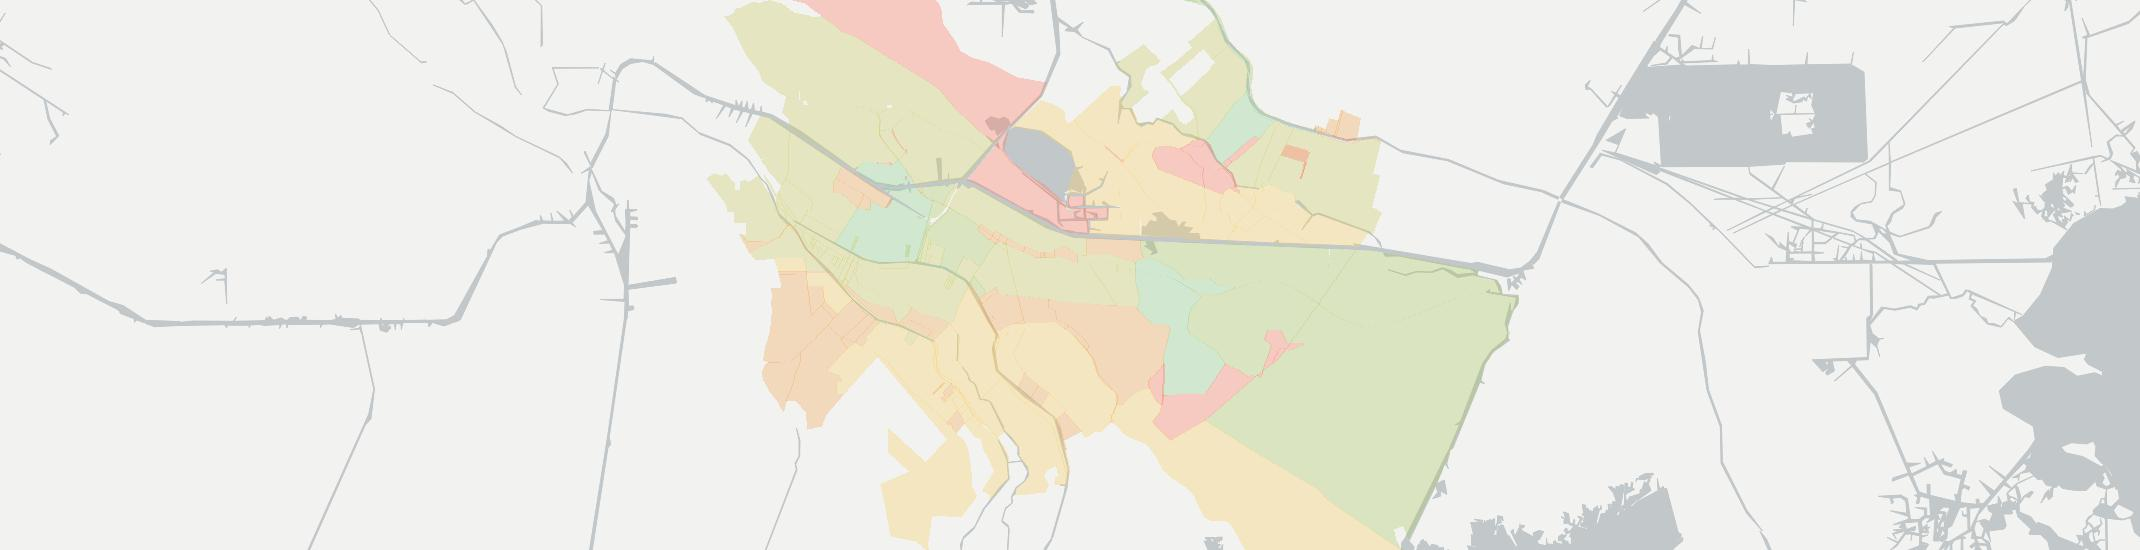 Bourg Internet Competition Map. Click for interactive map.